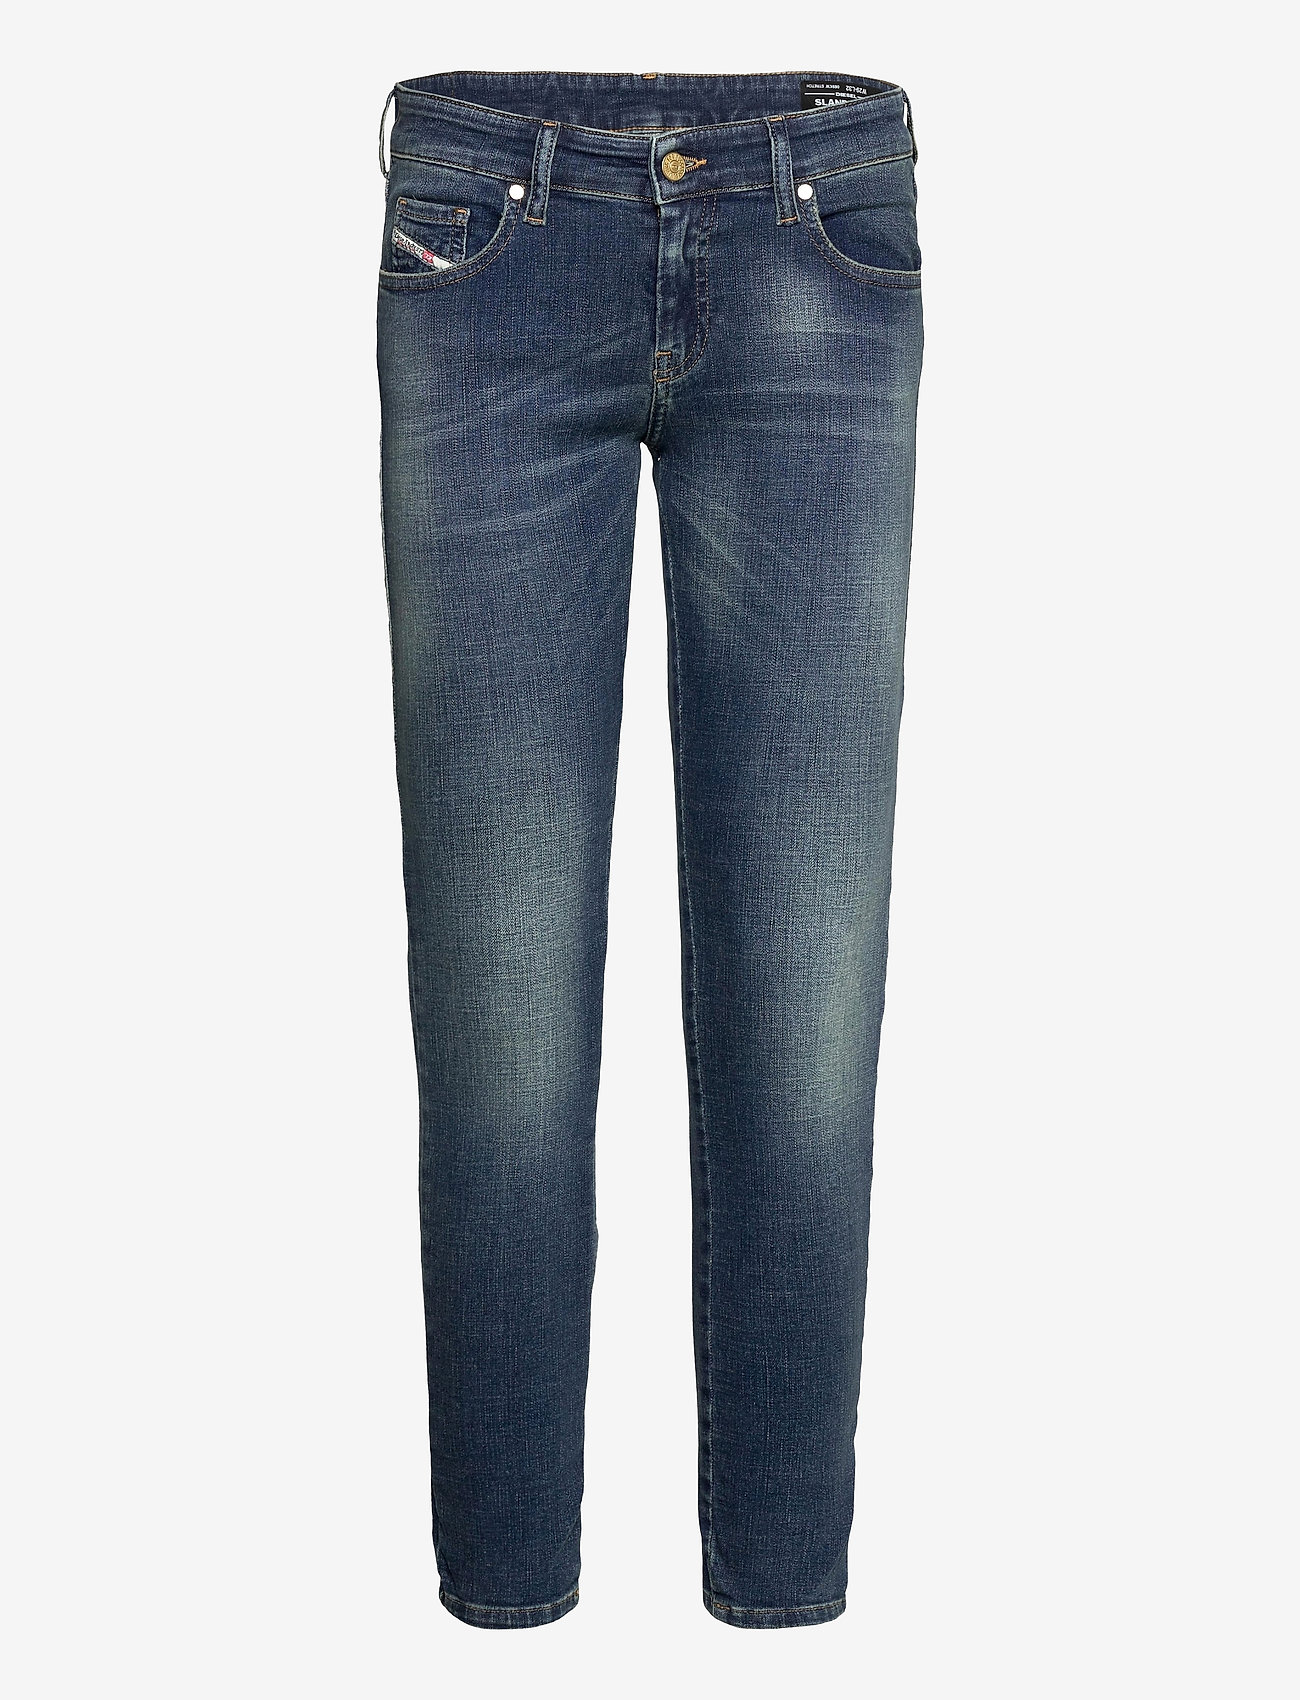 Diesel Women - SLANDY-LOW L.32 TROUSERS - slim jeans - denim - 0